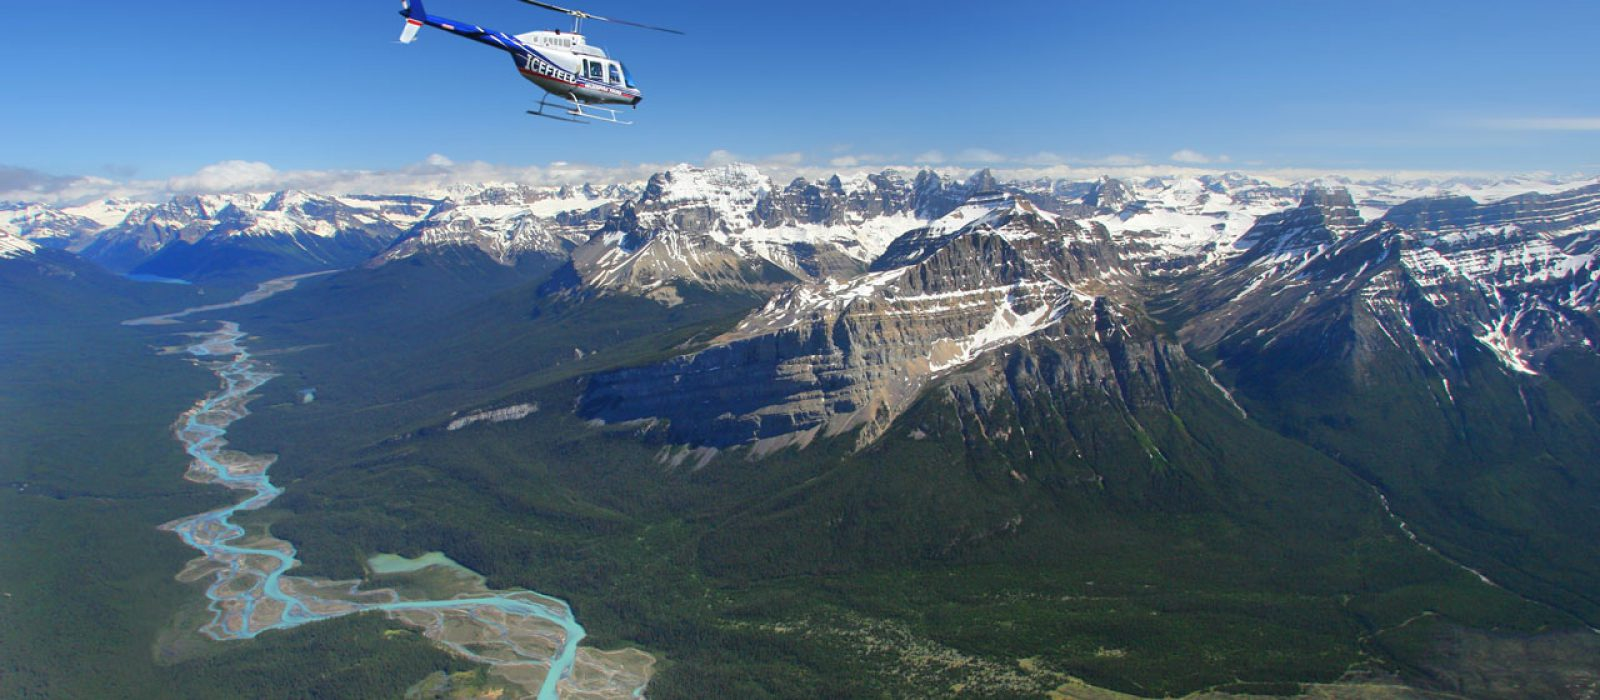 Helicopter flying over the Icefields in the Canadian Rockies in Alberta